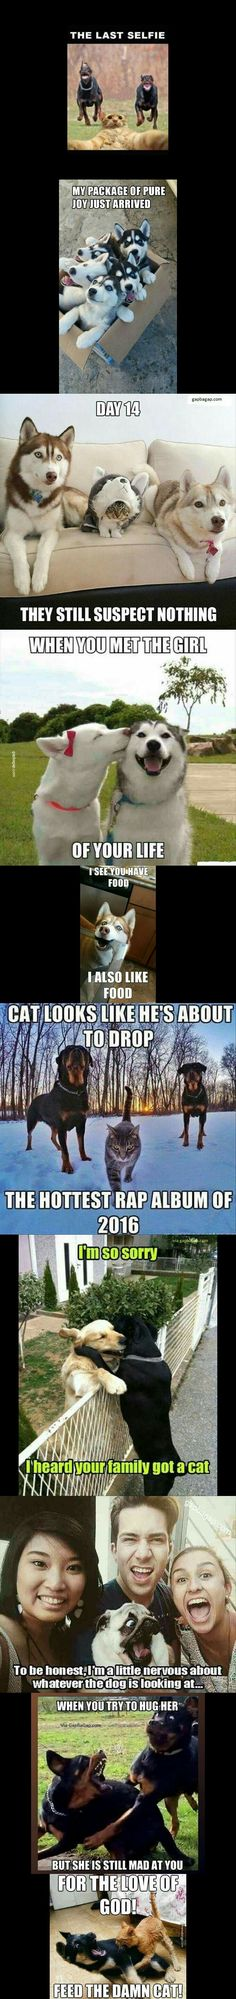 Top 10 Funniest Memes ft. Funny #Dogs And Cats